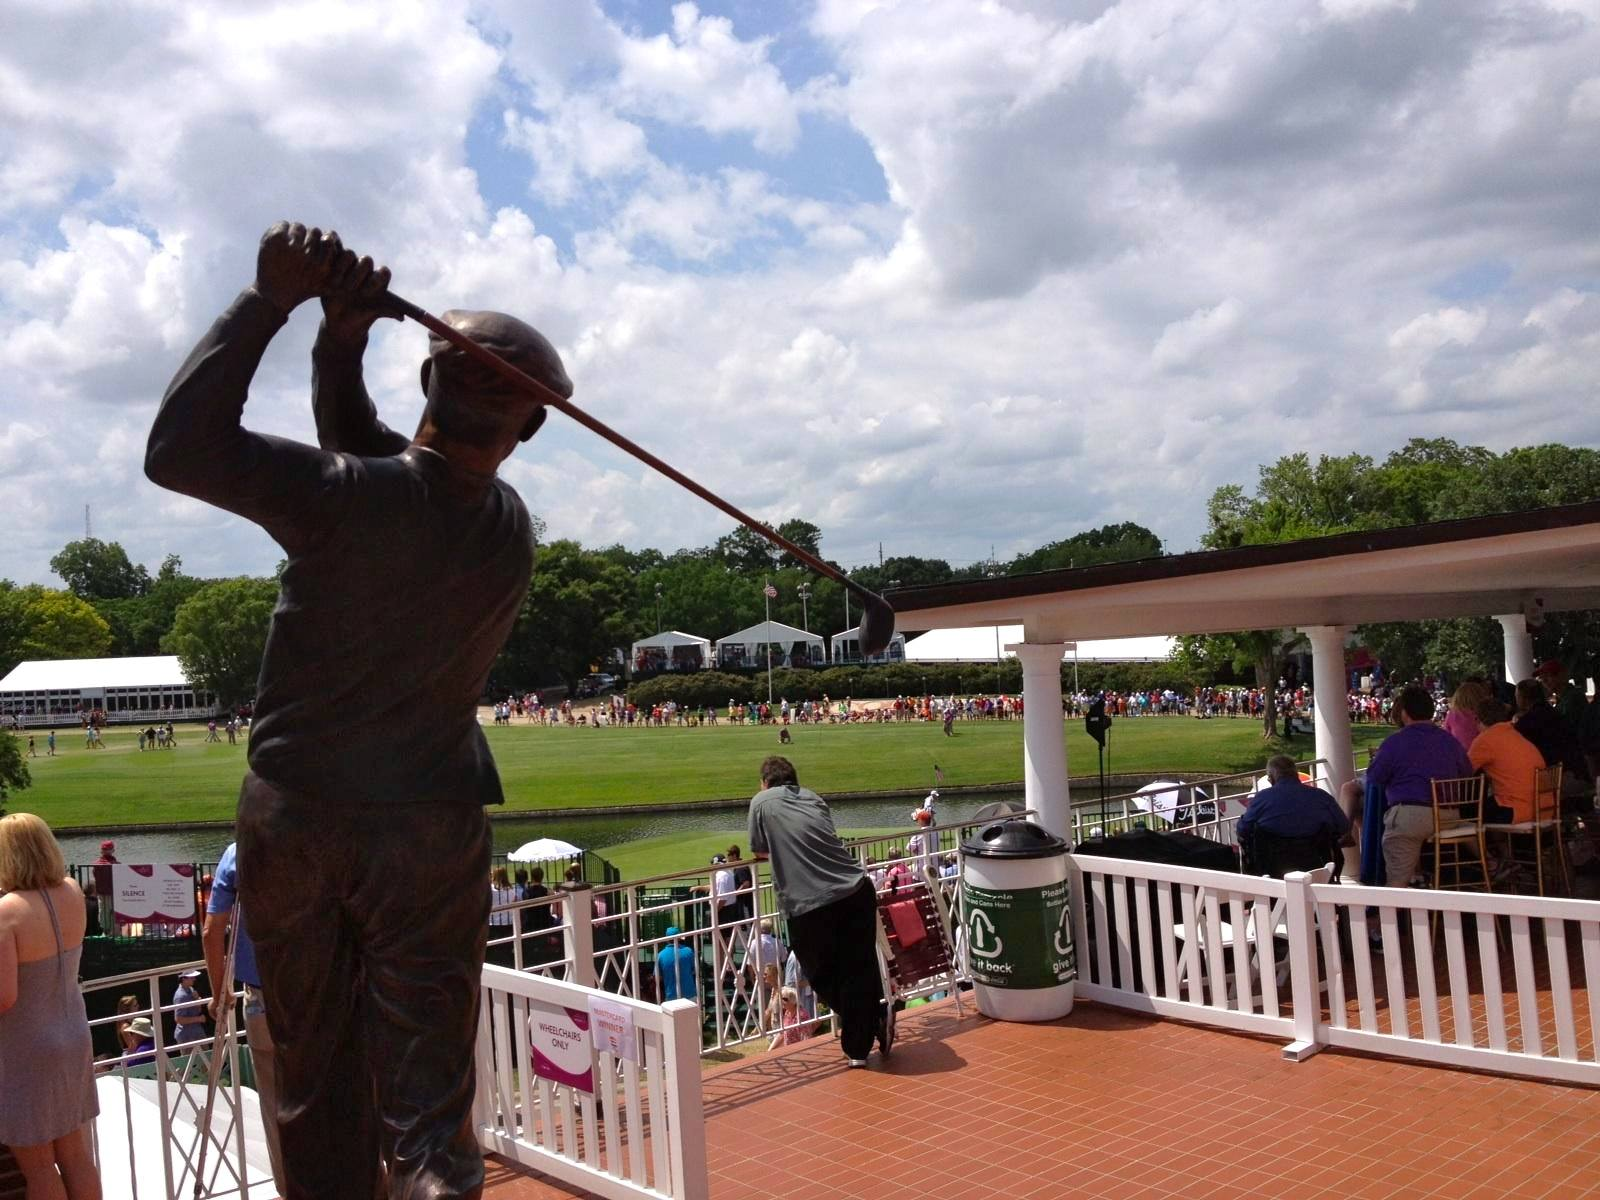 A statue of Ben Hogan presides over Colonial Country Club. Image via Crowne Plaza Invitational/Facebook